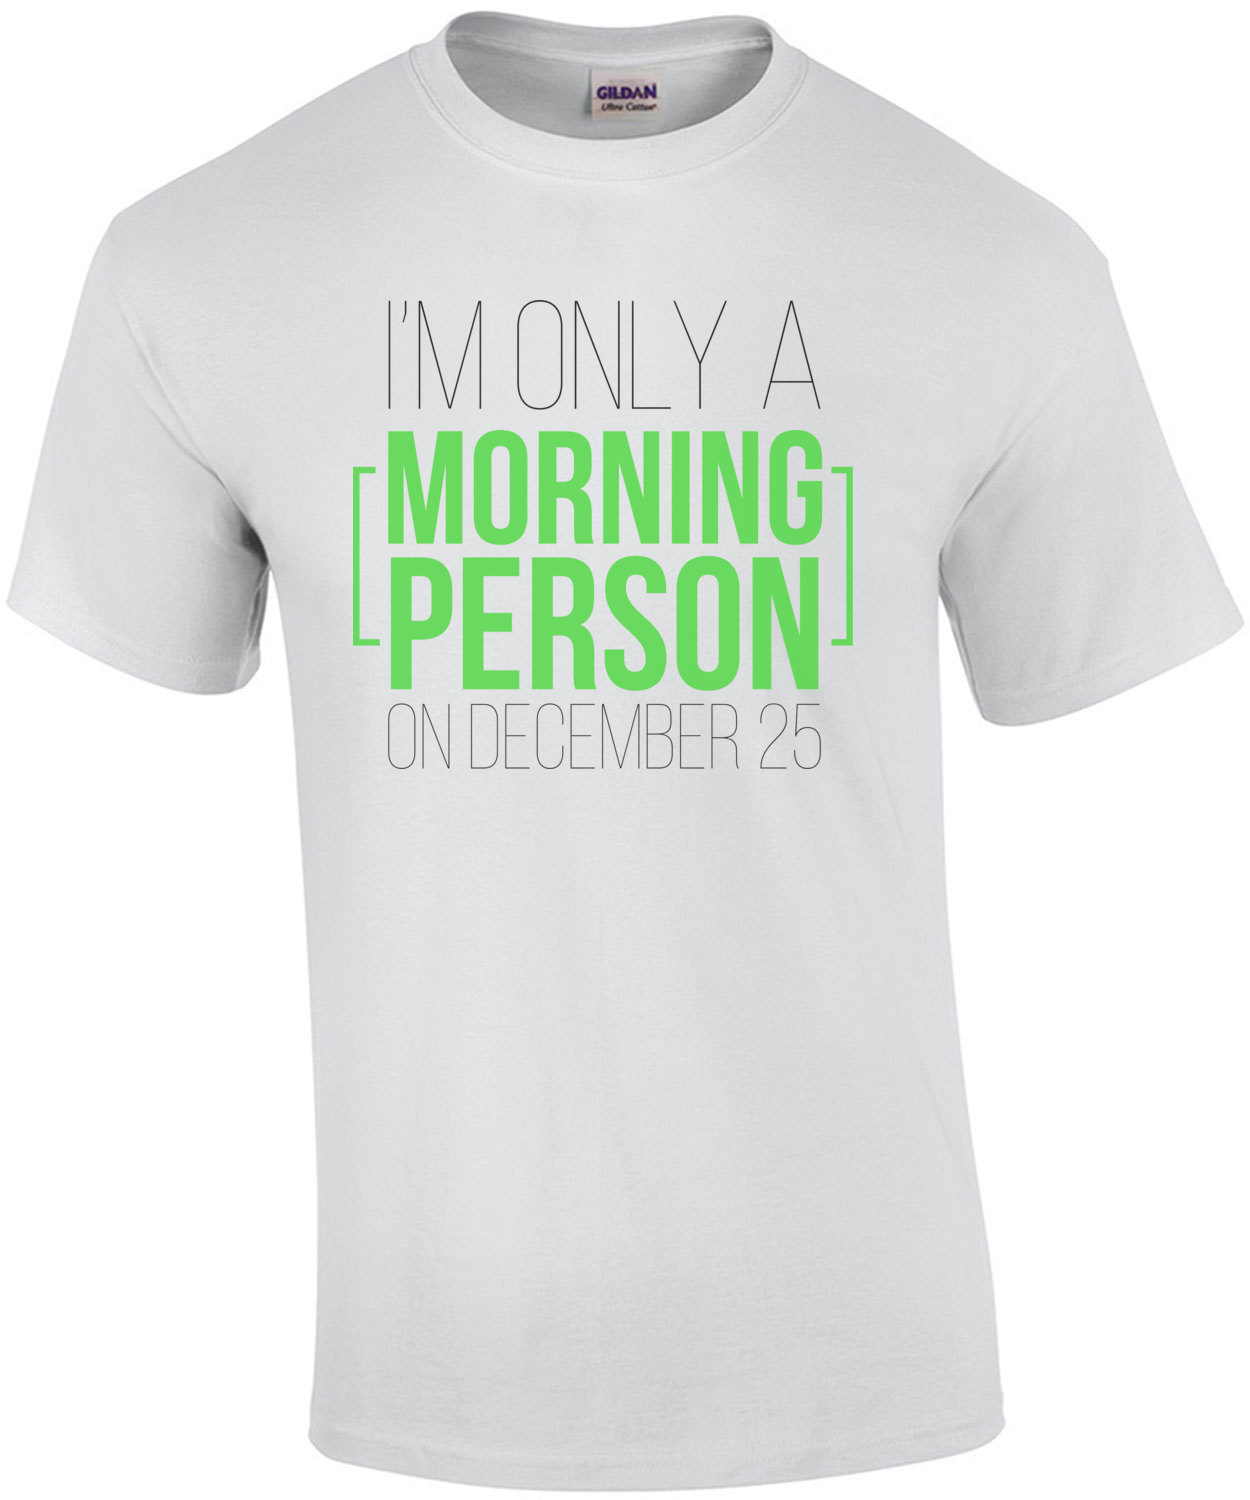 b785ec74e I'm only a morning person on December 25 - funny christmas t-shirt